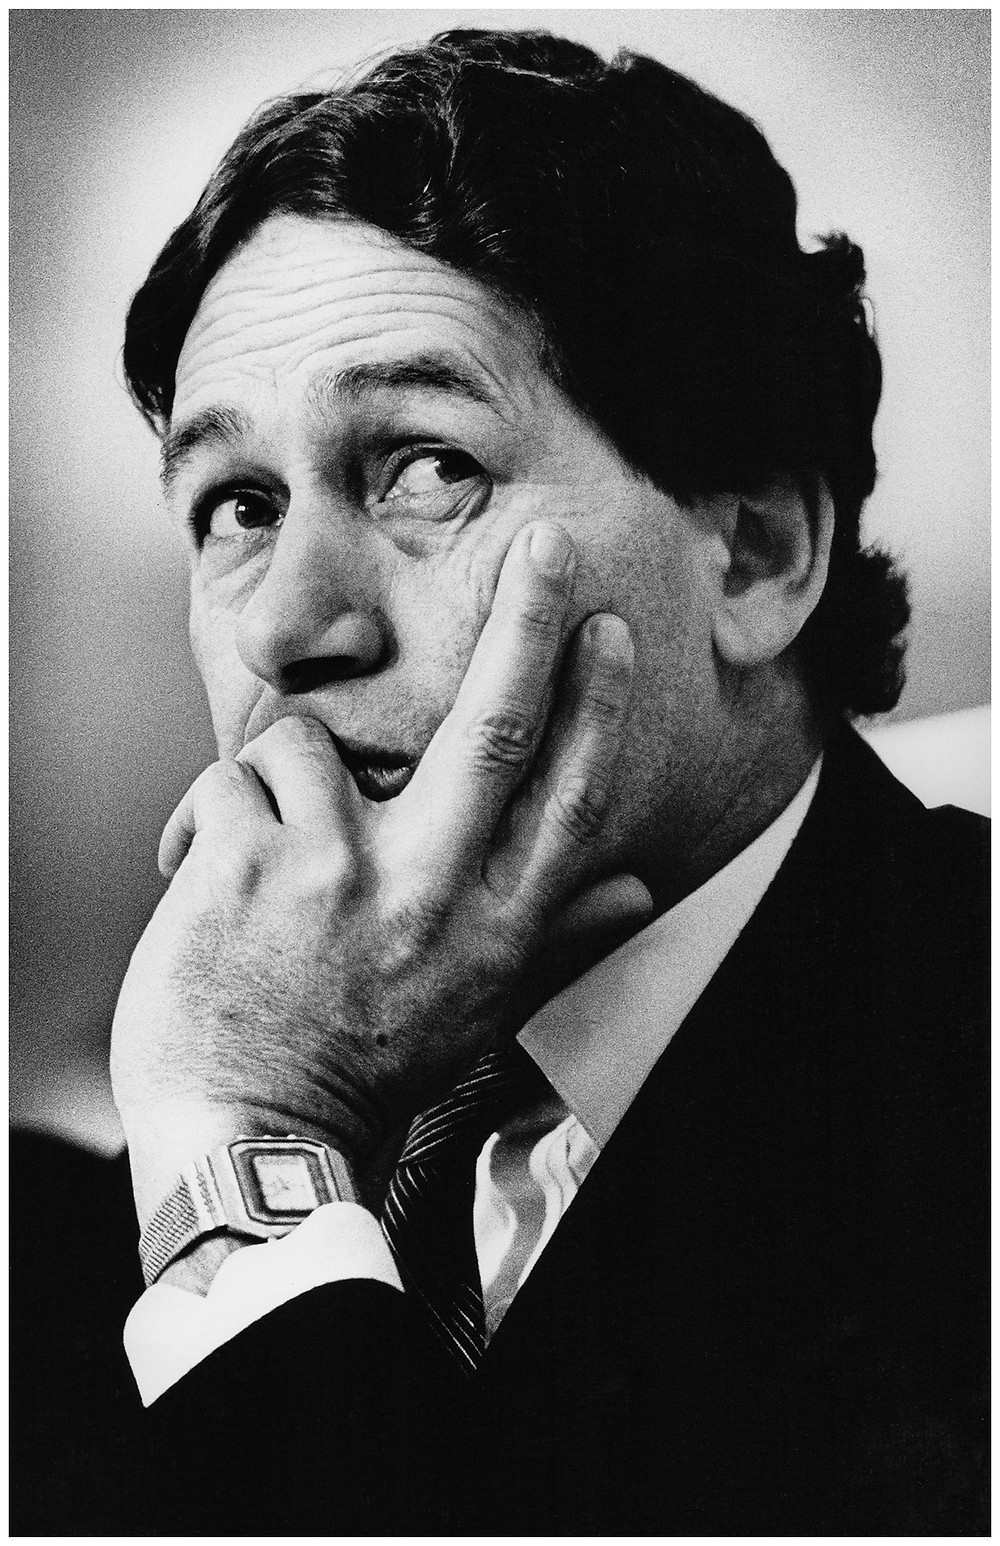 Portrait of politician Winston Peters looking thoughtful